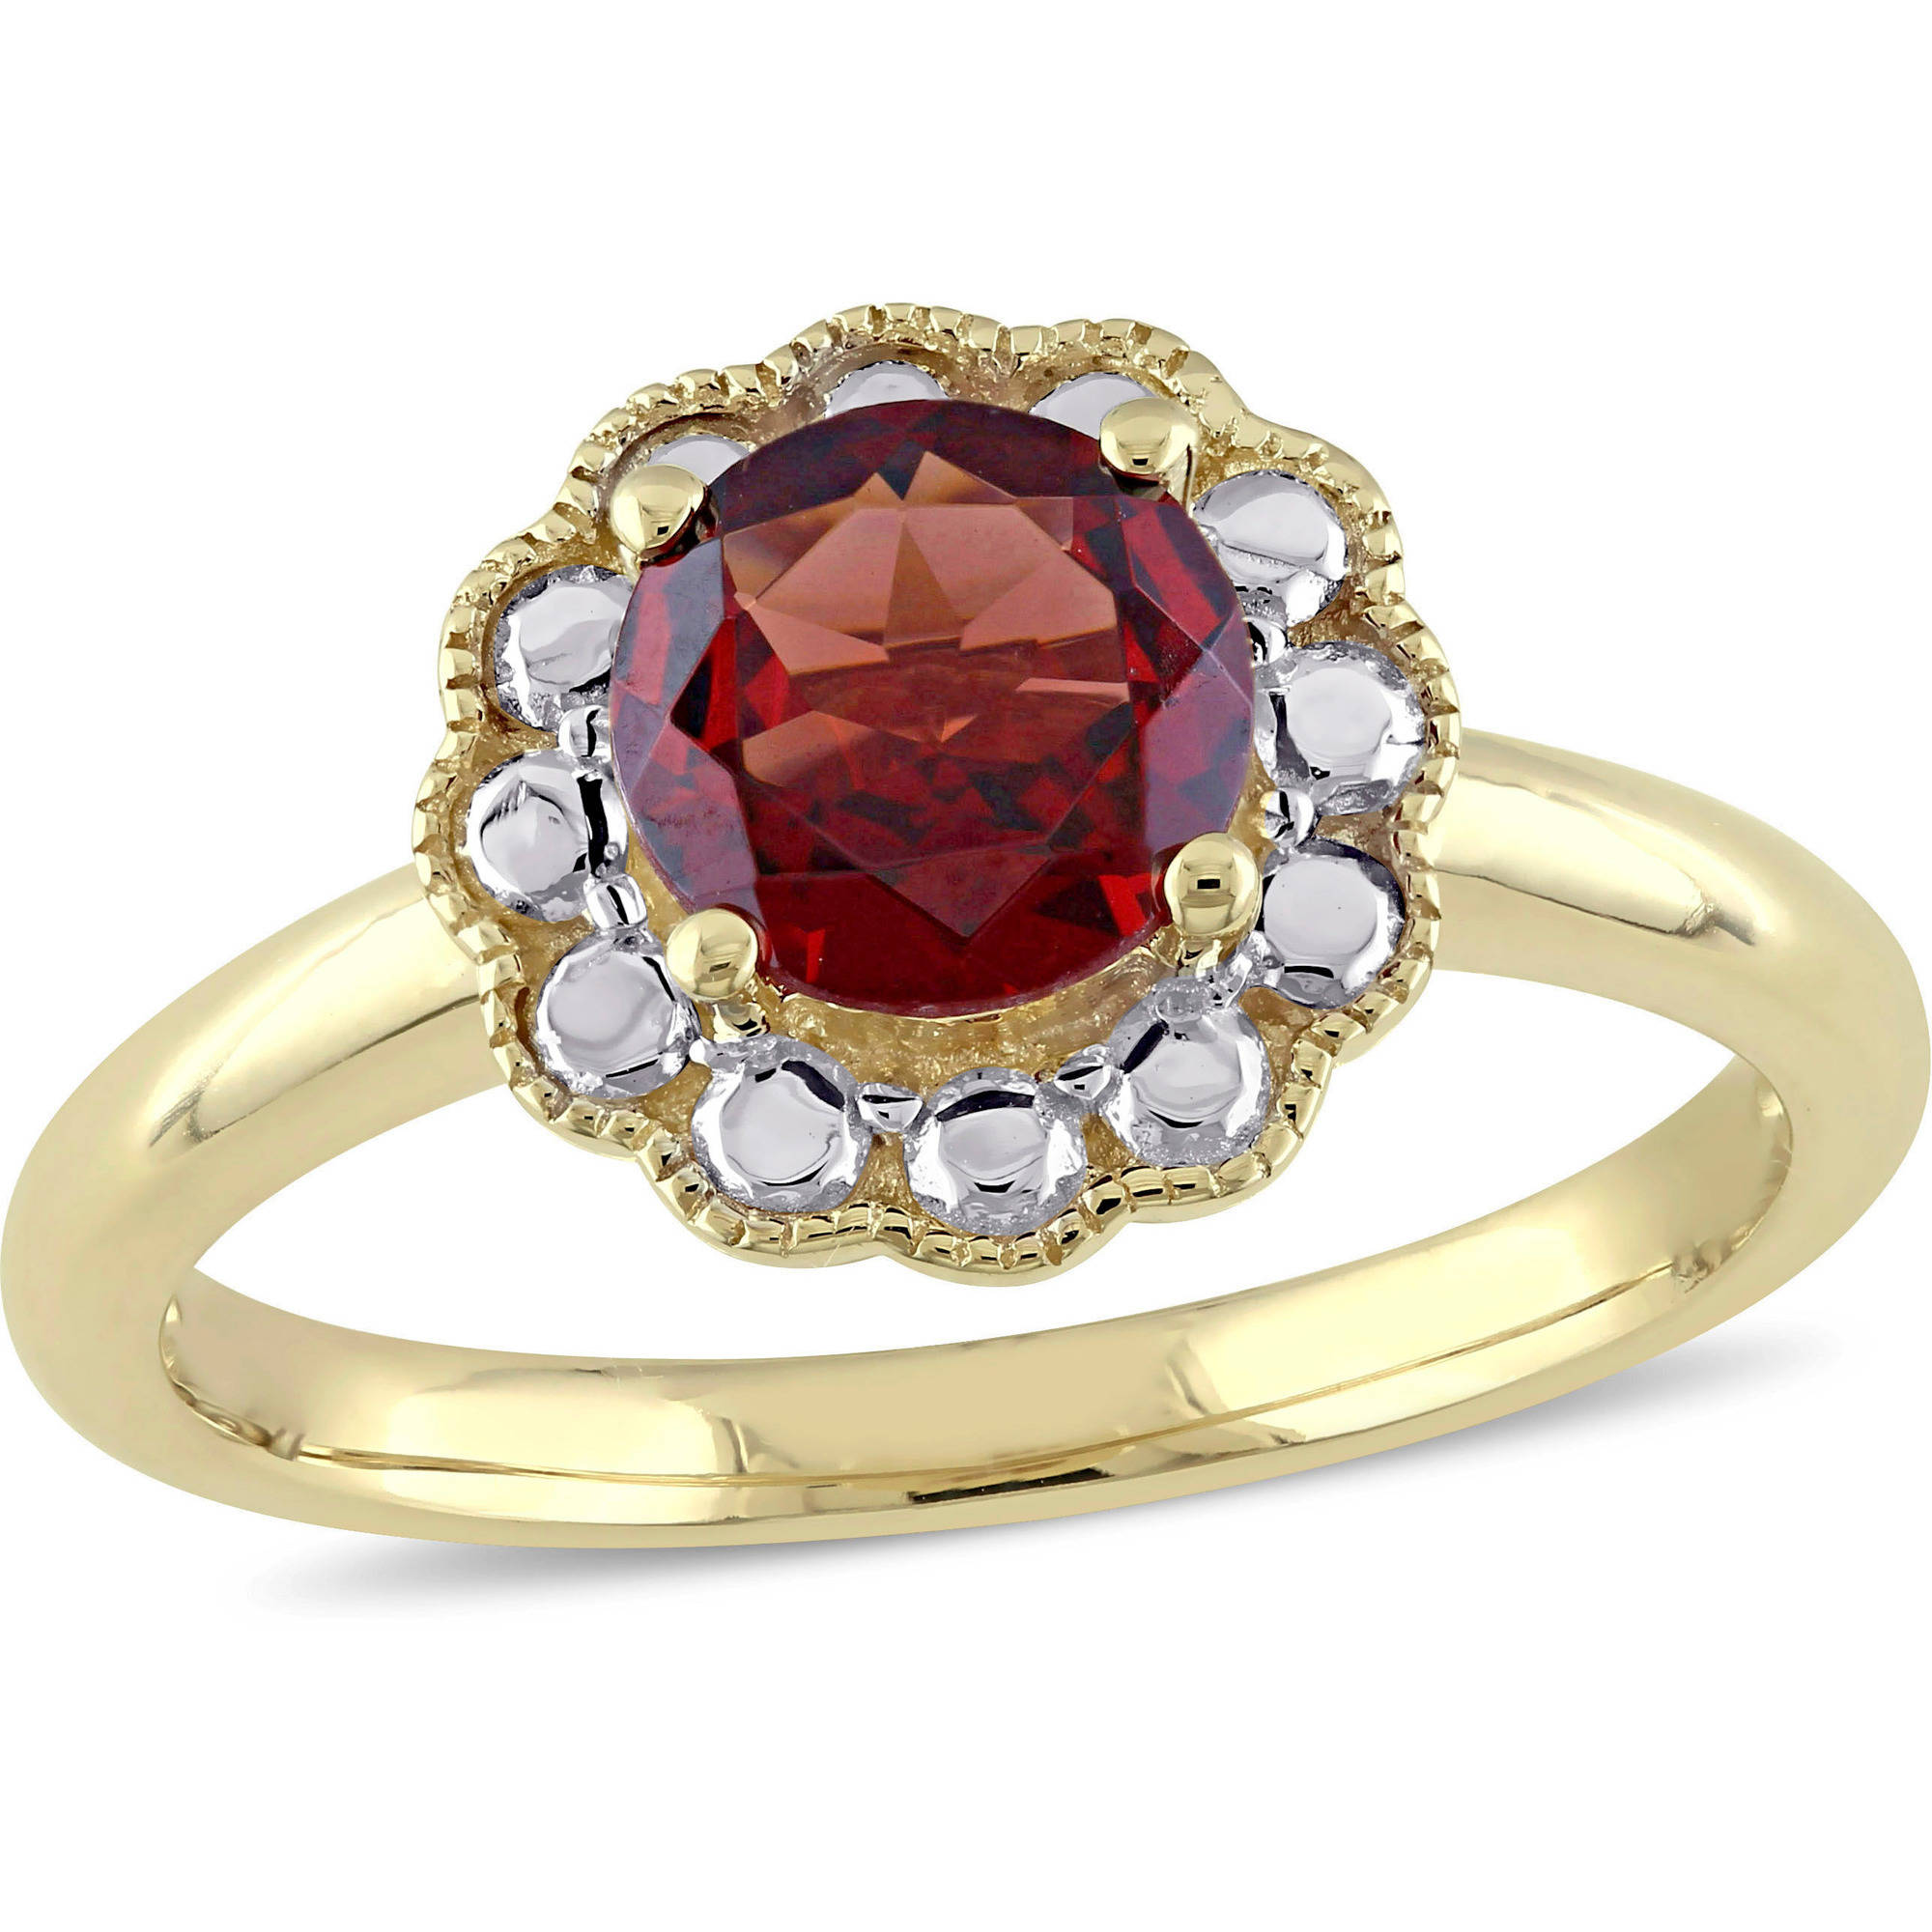 Tangelo 1-1 3 Carat T.G.W. Garnet 10kt Yellow Gold Flower Cocktail Ring by Tangelo